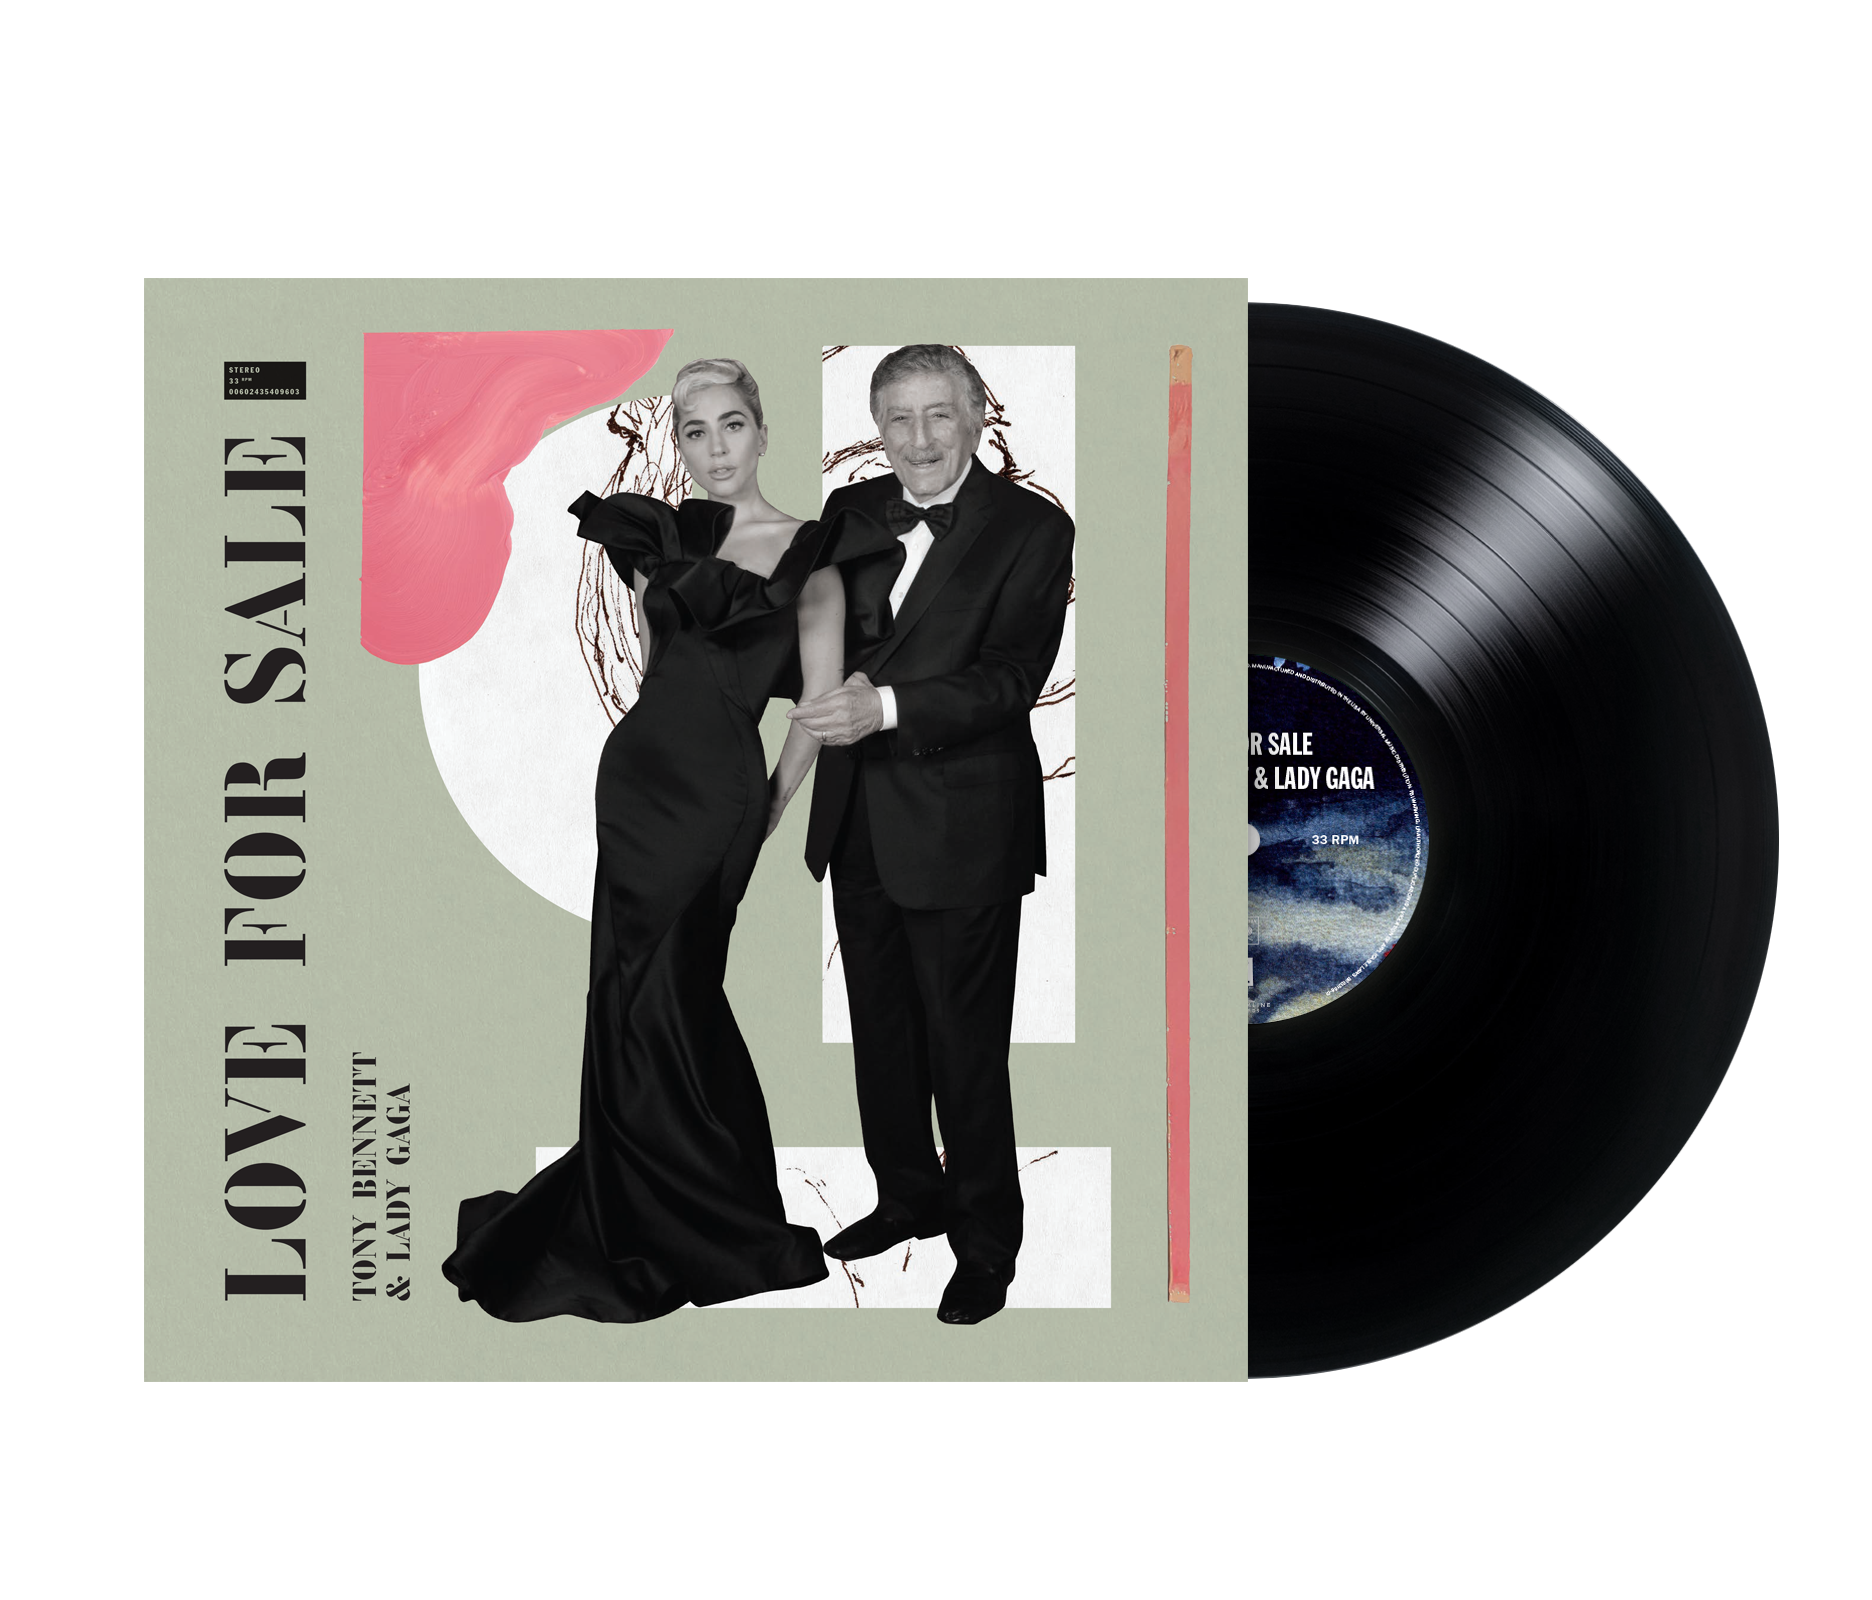 Interscope Tony Bennett & Lady Gaga - Love For Sale (Limited Edition)